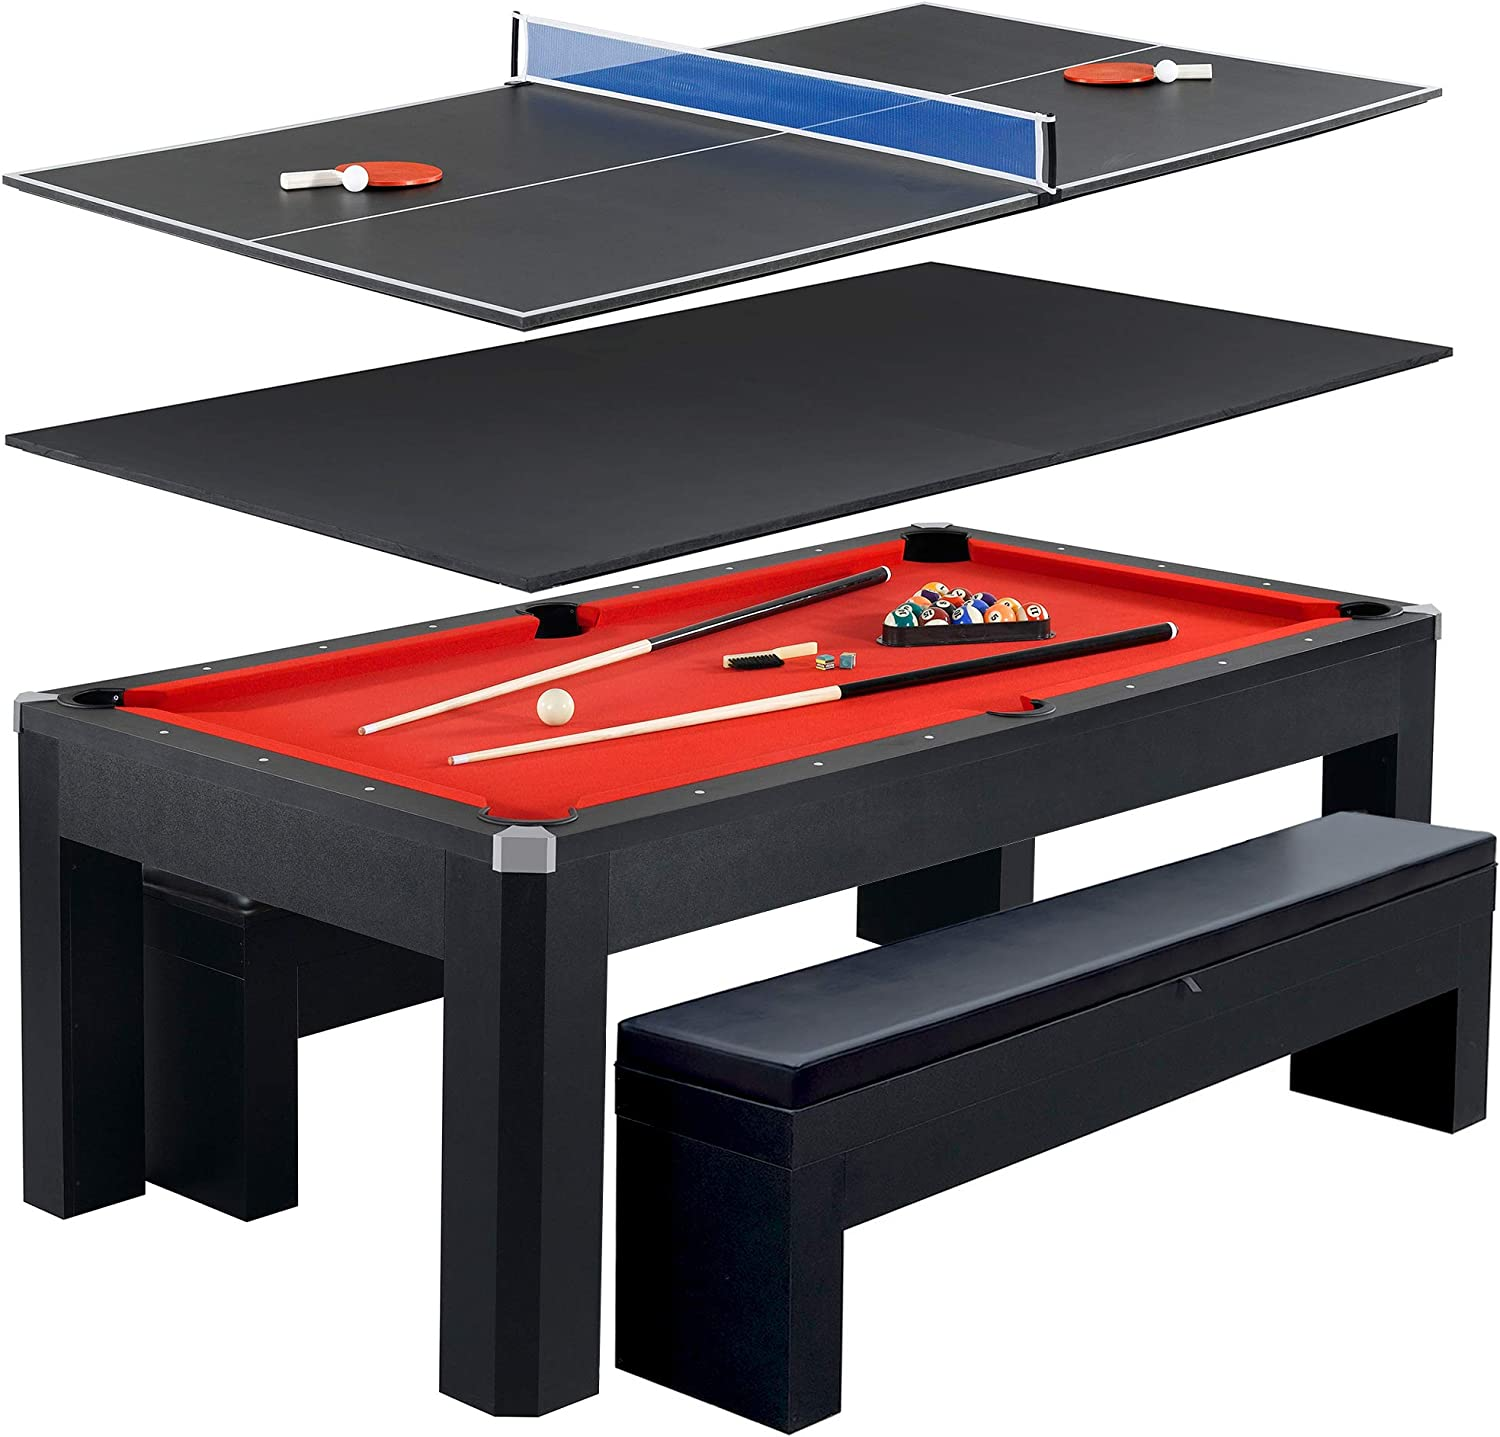 Hathaway Park Avenue 7 Pool Table Tennis Combination with Dining Top, Two Storage Benches, Free Accessories